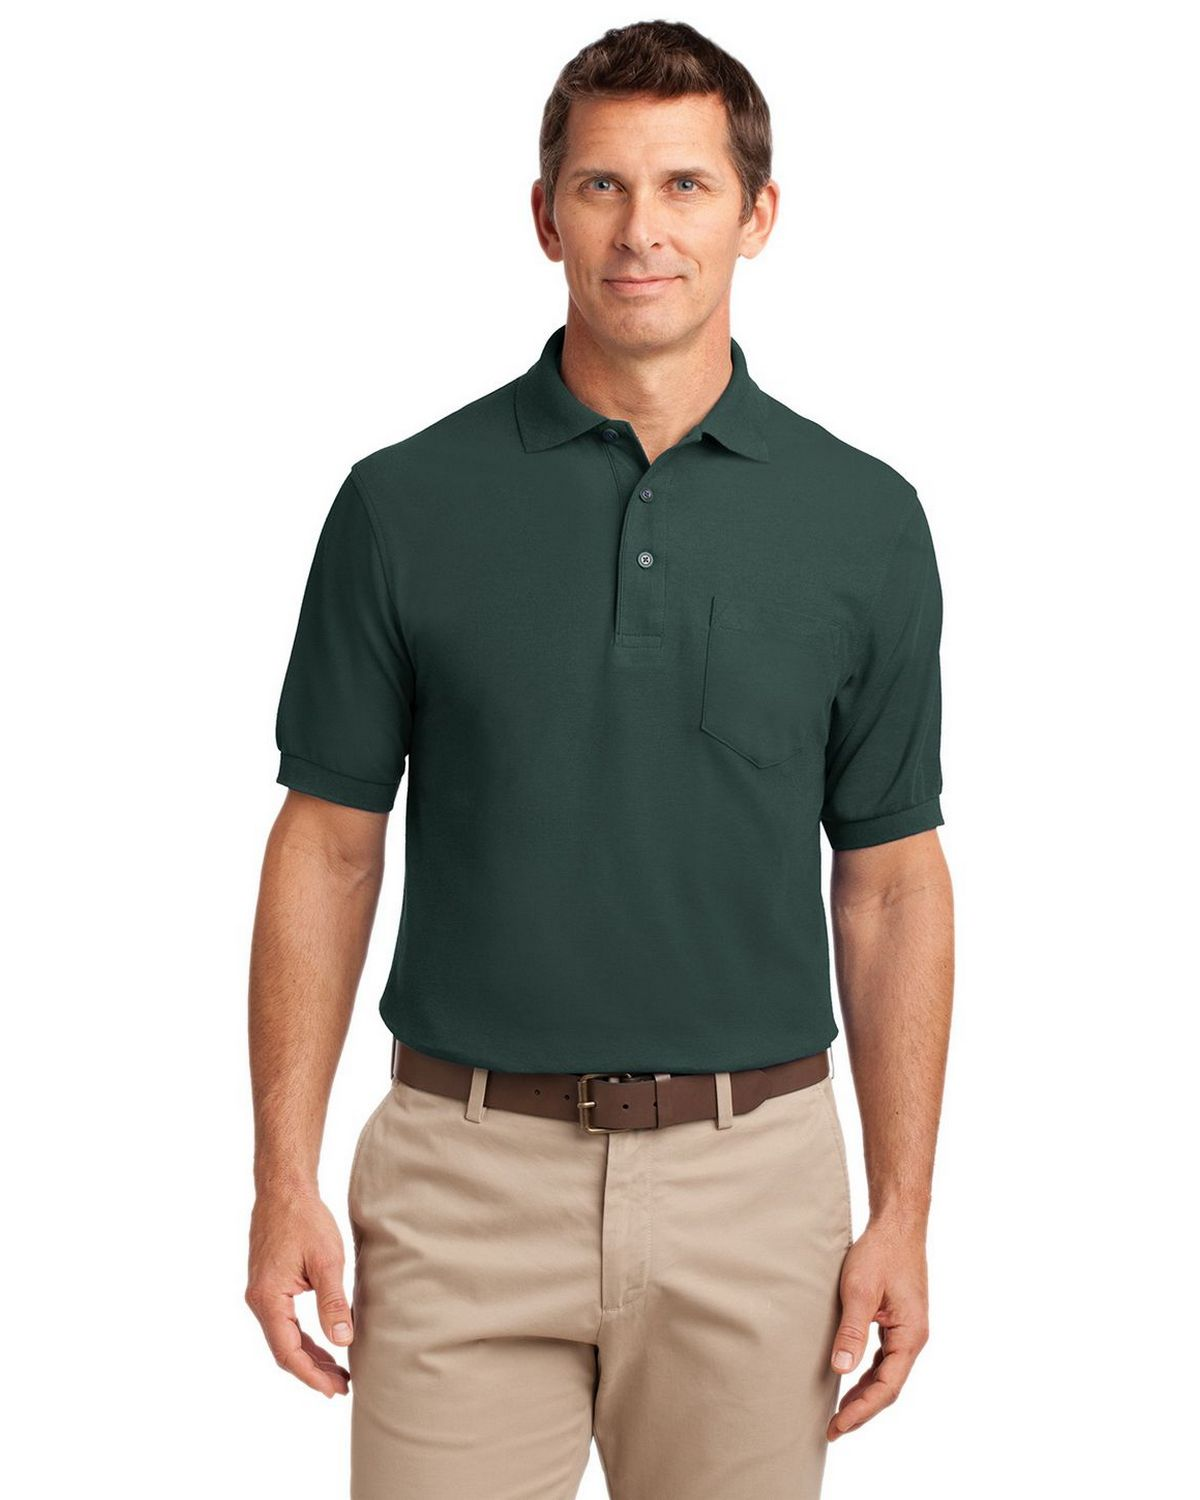 Port Authority K500P Men's Silk Touch Polo with Pocket - Dark Green - XS #silk